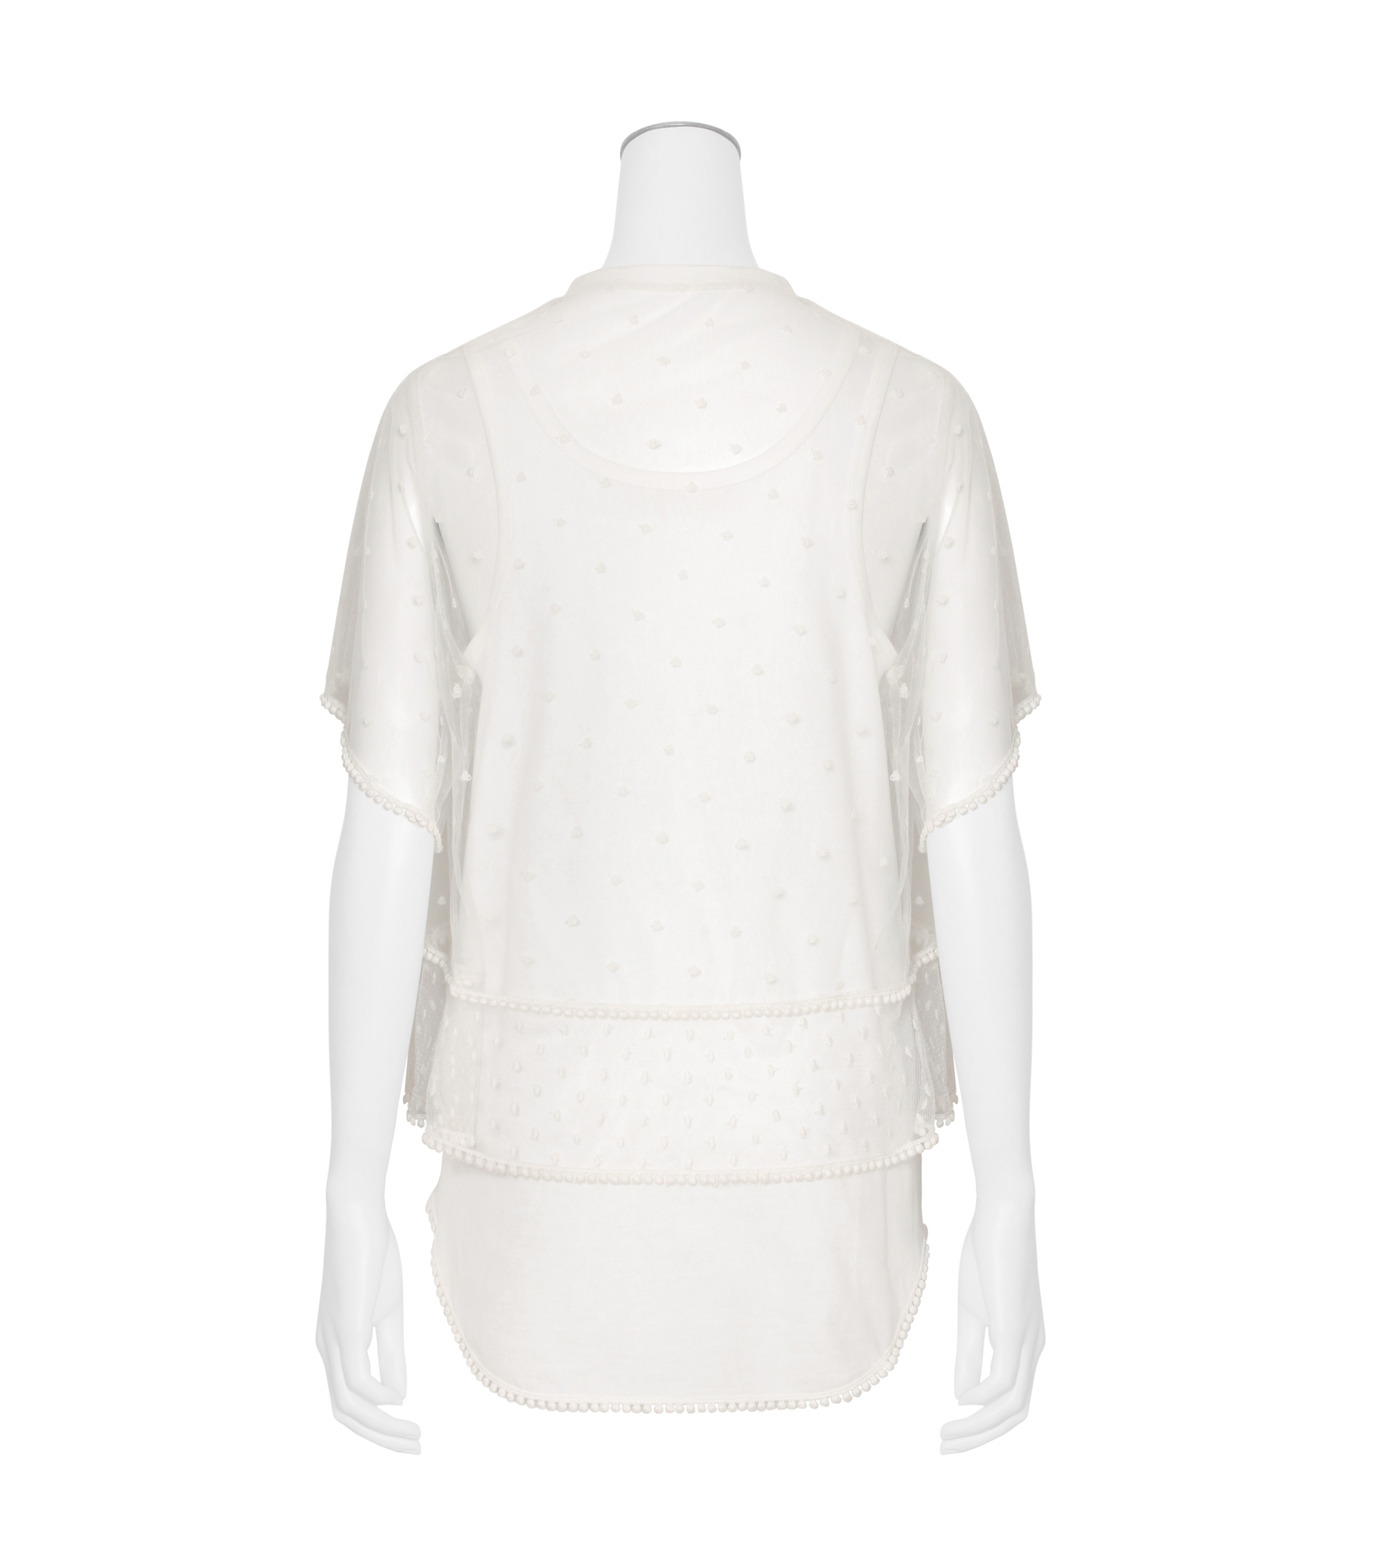 Chloe(クロエ)のdot lace t-shirt-WHITE(カットソー/cut and sewn)-JH12080B-4 拡大詳細画像2